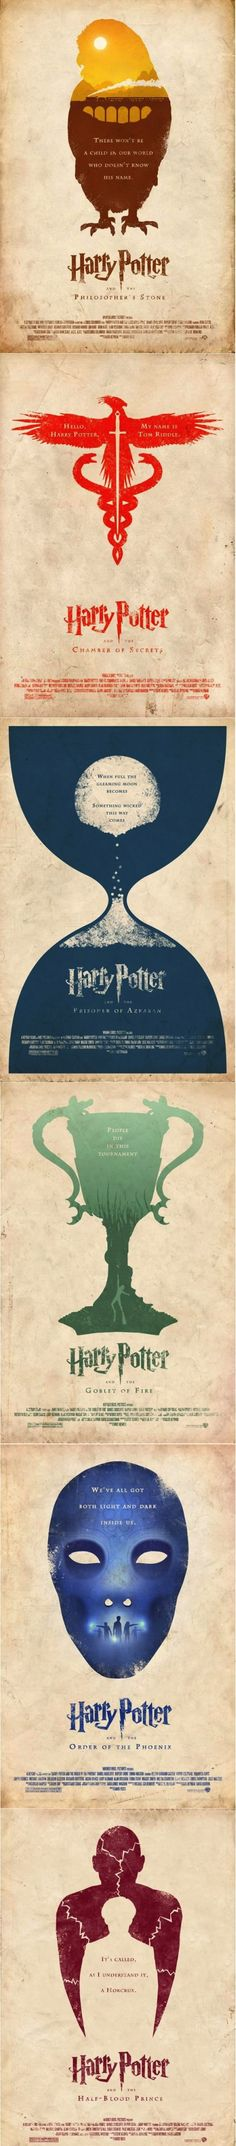 Harry Potter Movie Posters.